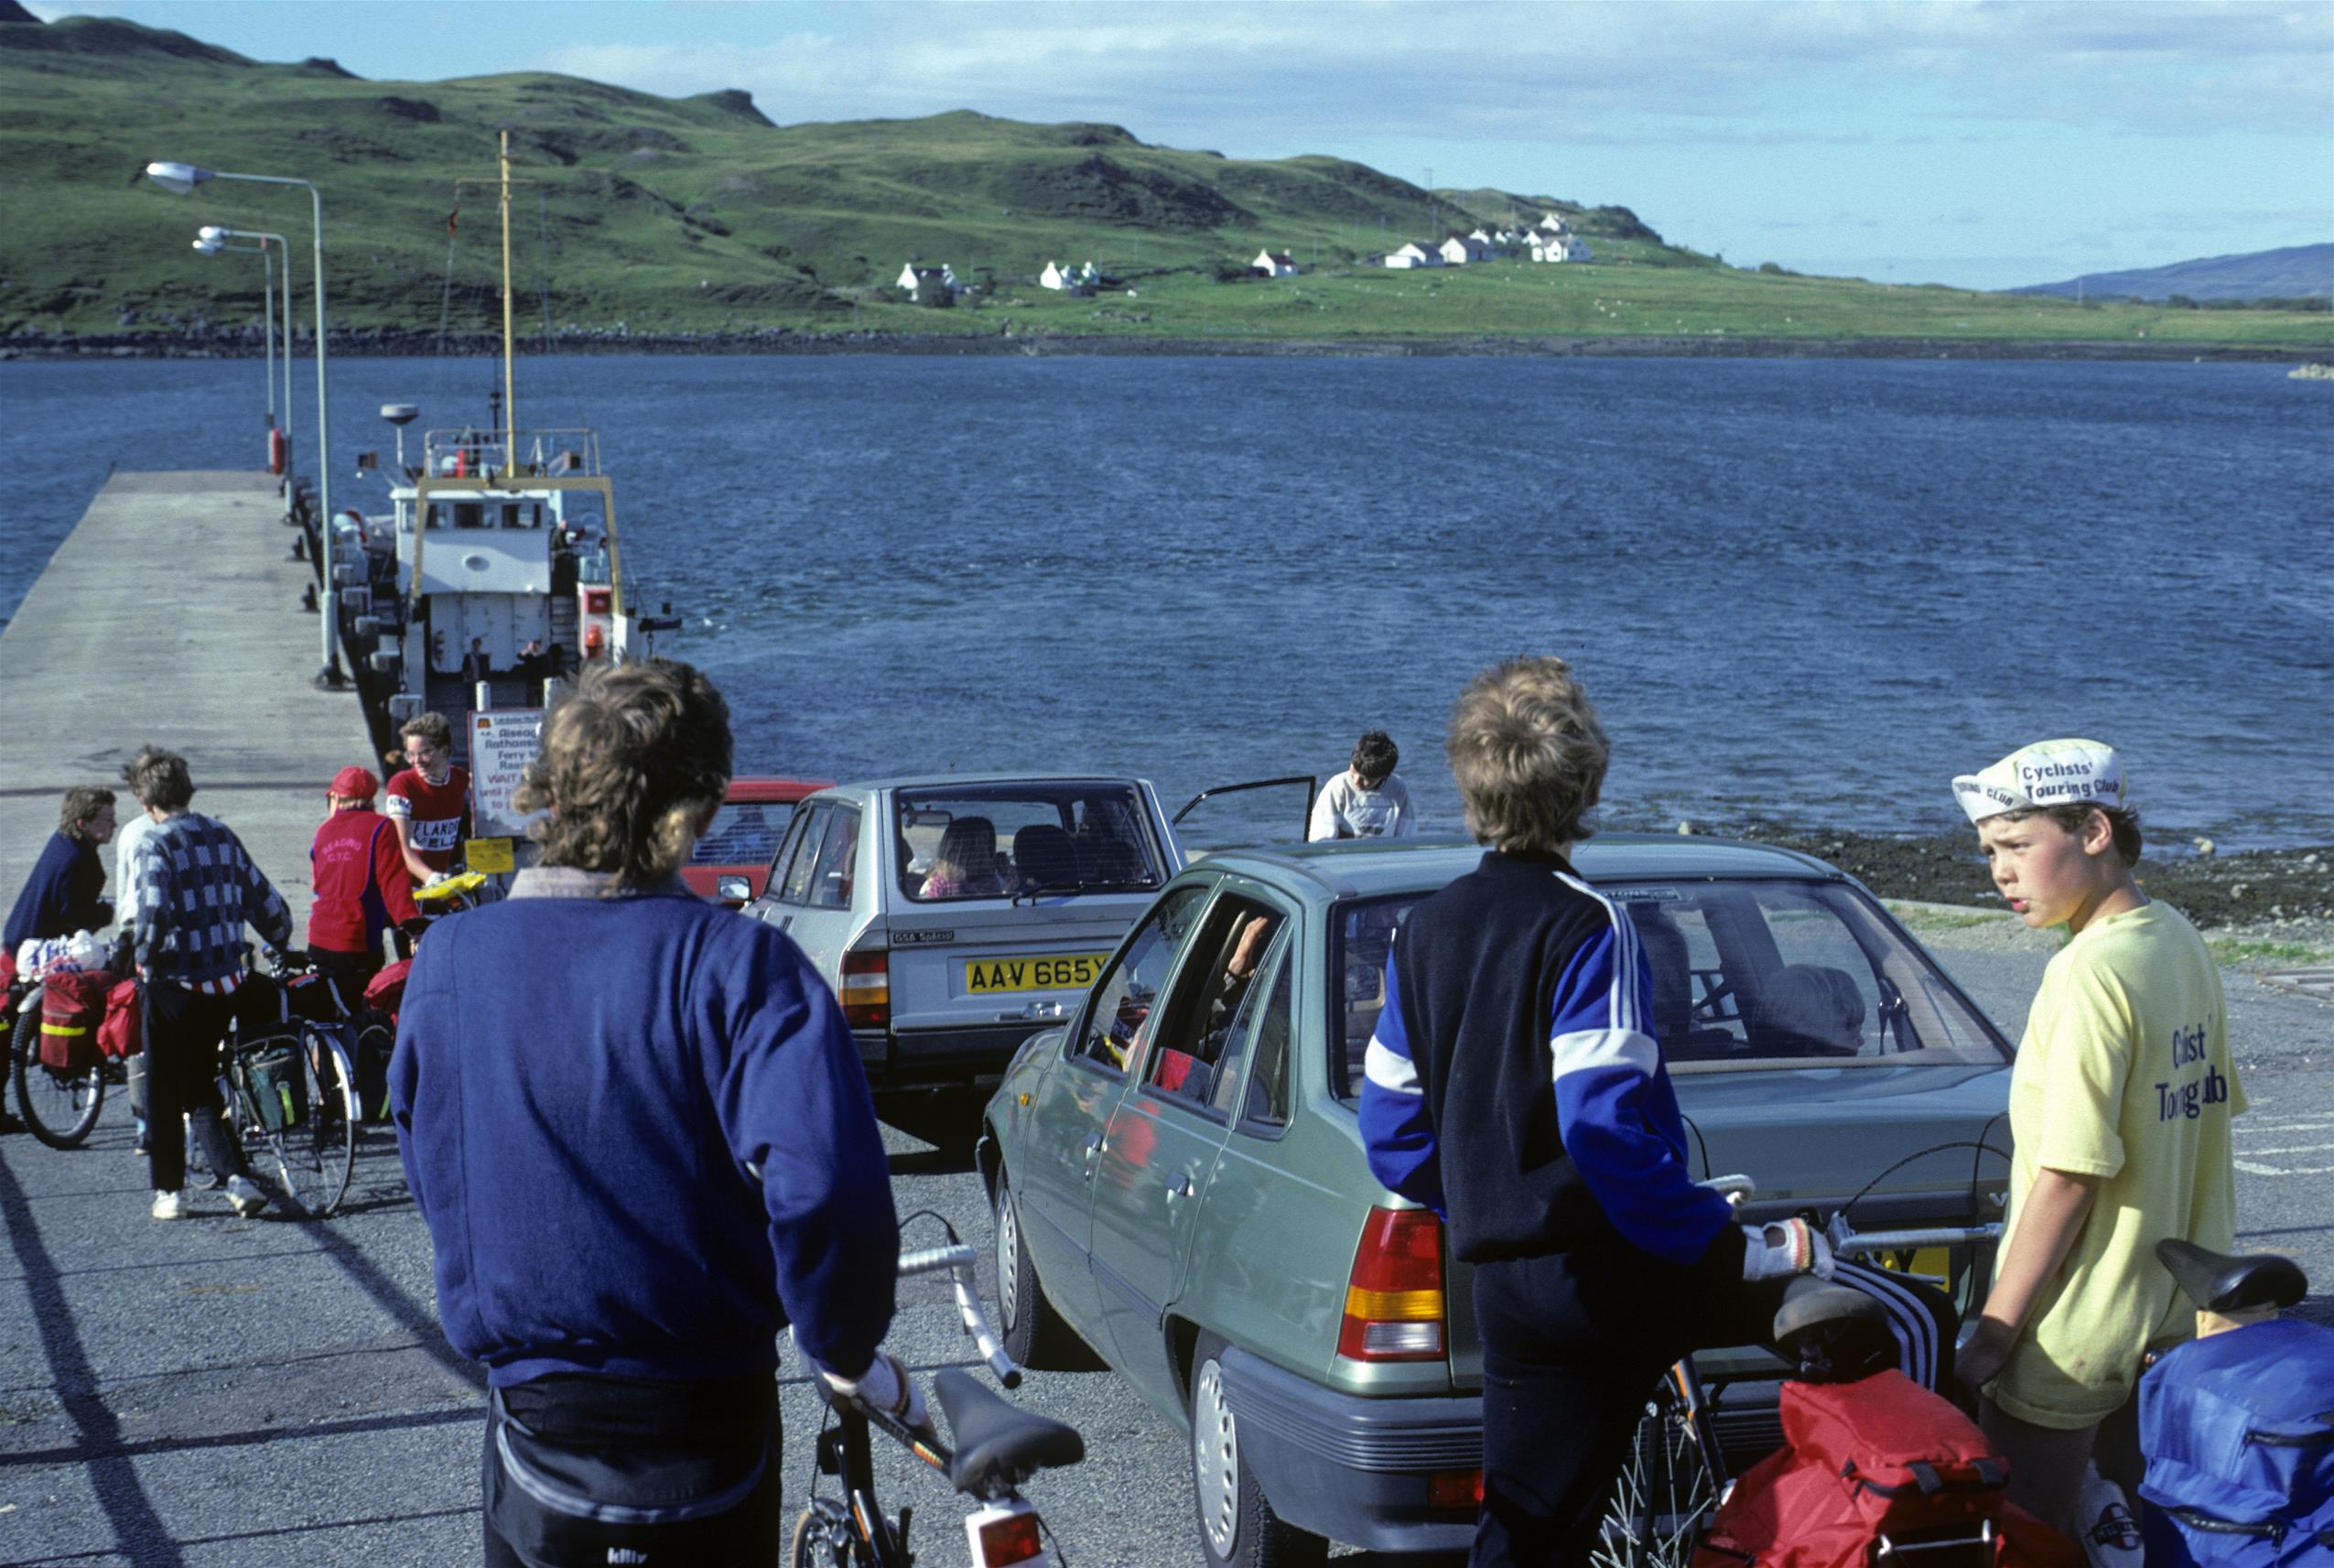 Ready to board the ferry at Sconser